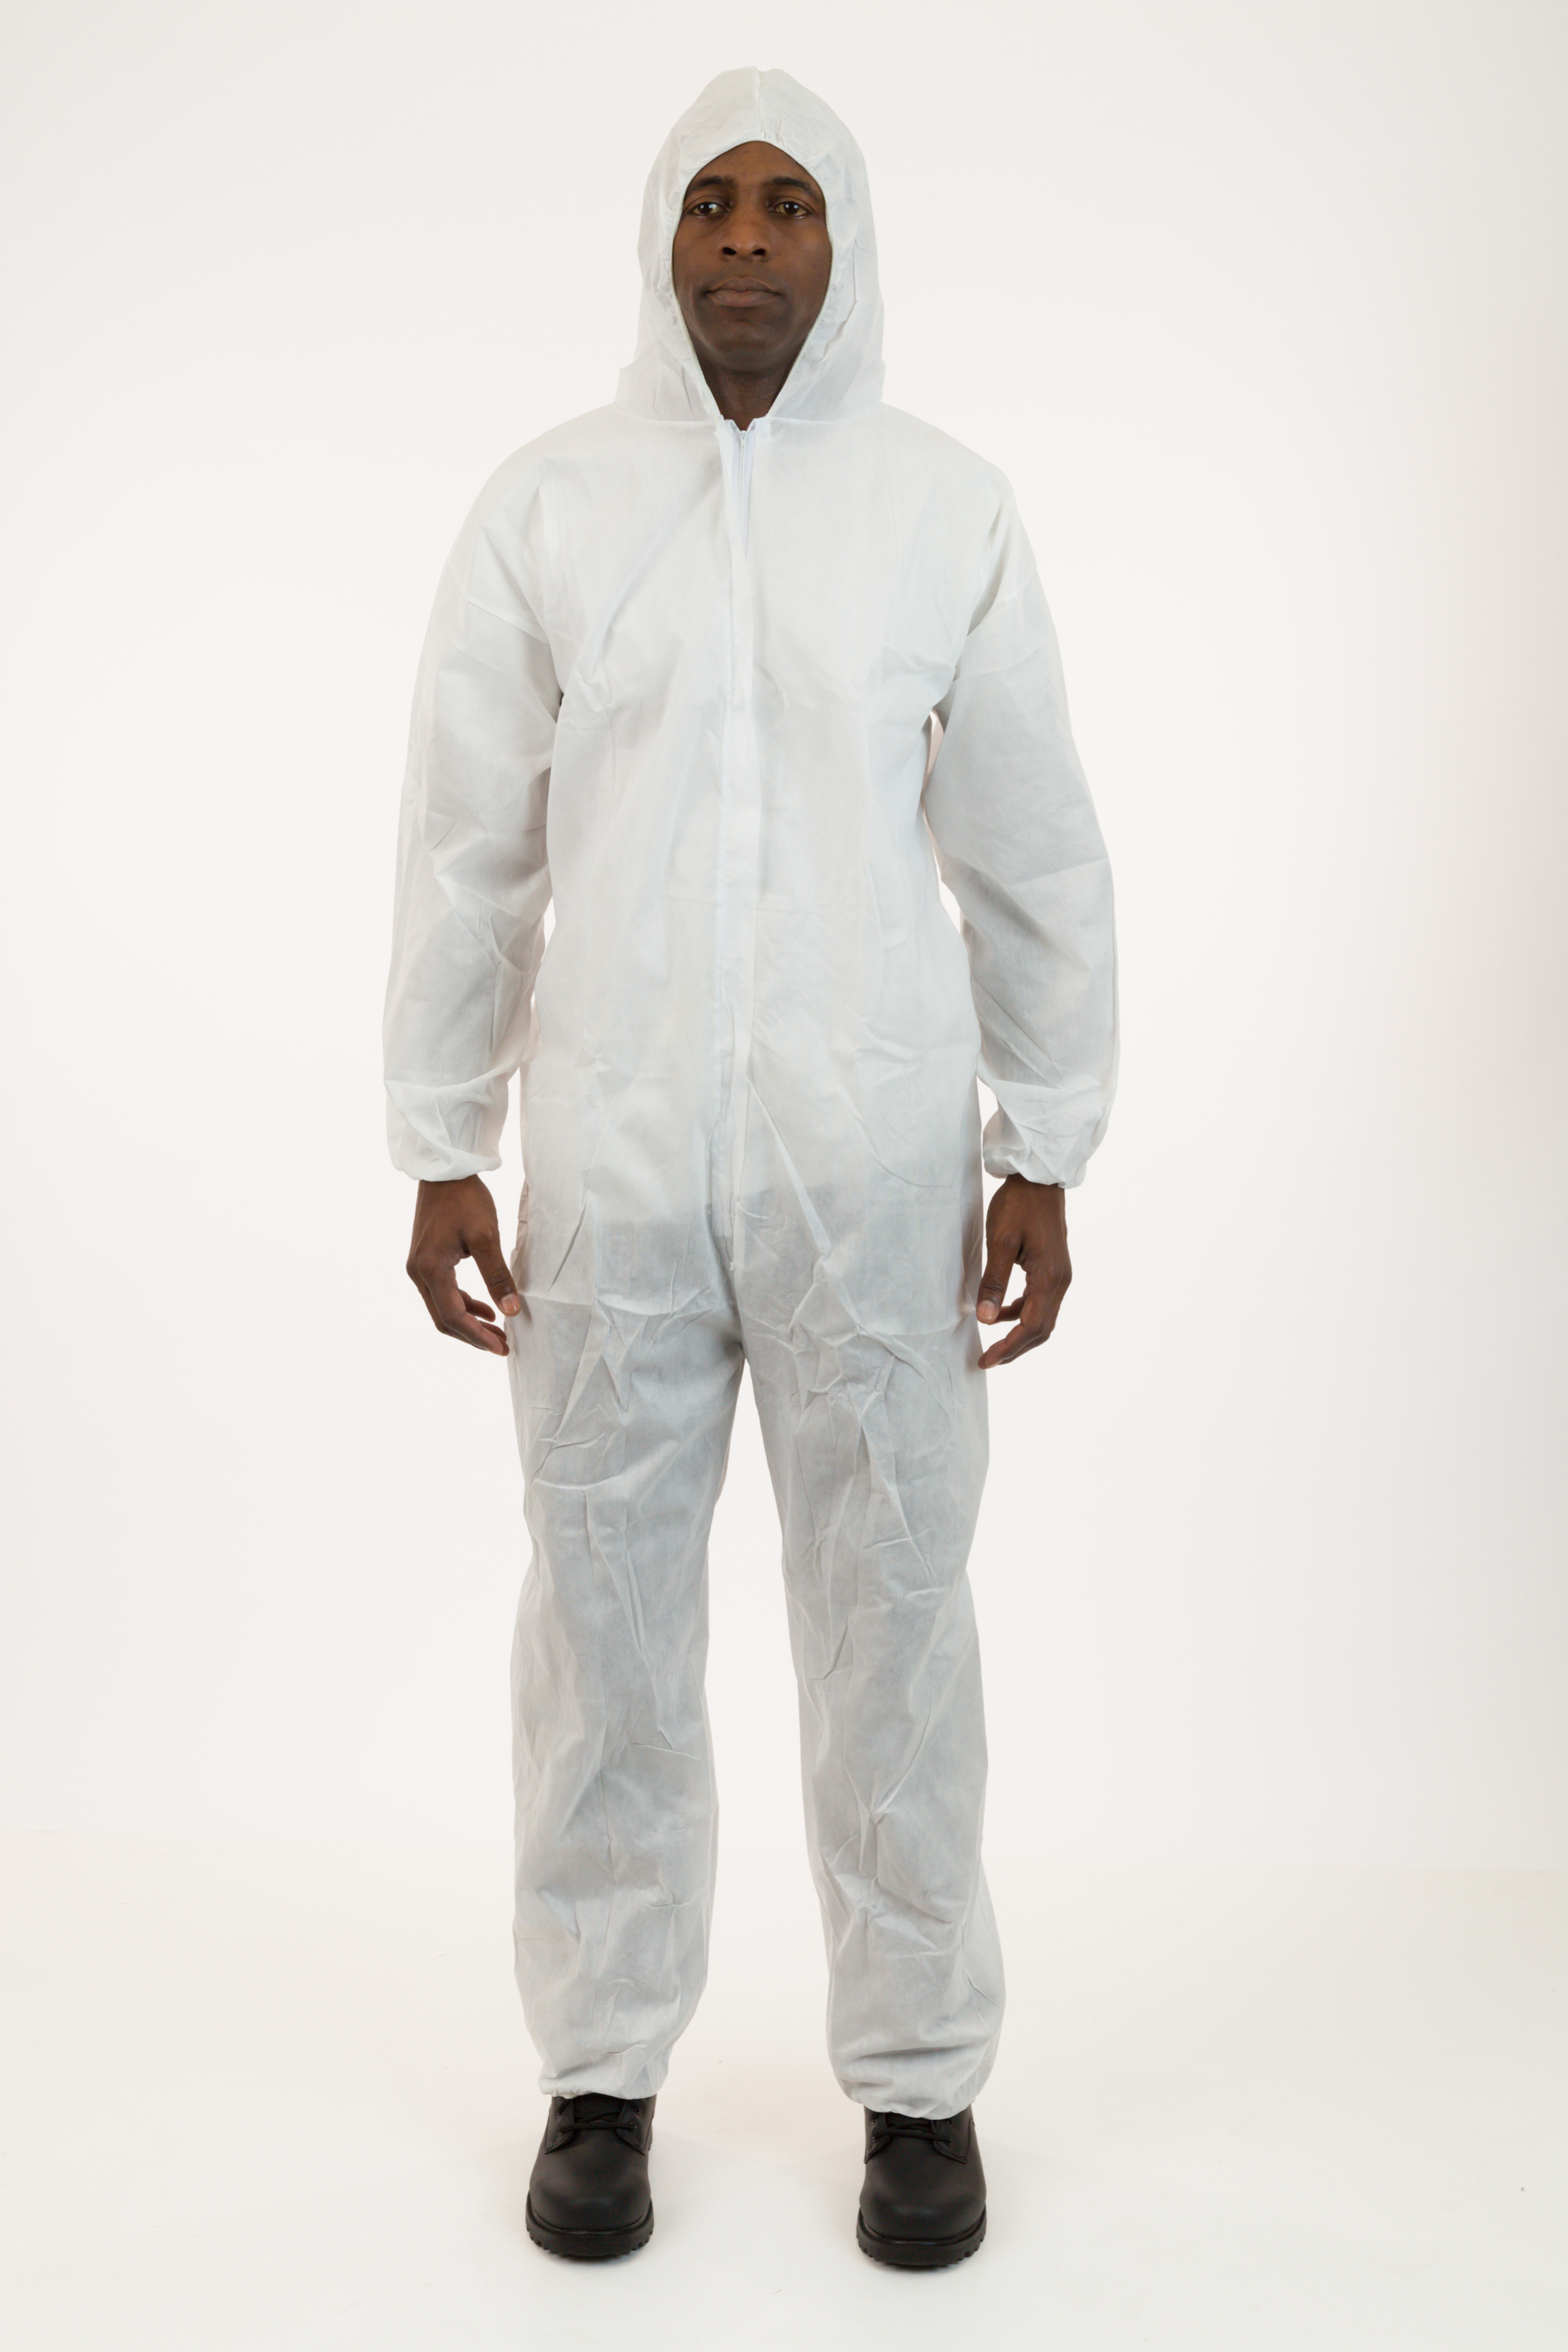 International Enviroguard - Heavyweight SMS Coverall, White, with Attached Hood, Elastic Wrist and Ankle